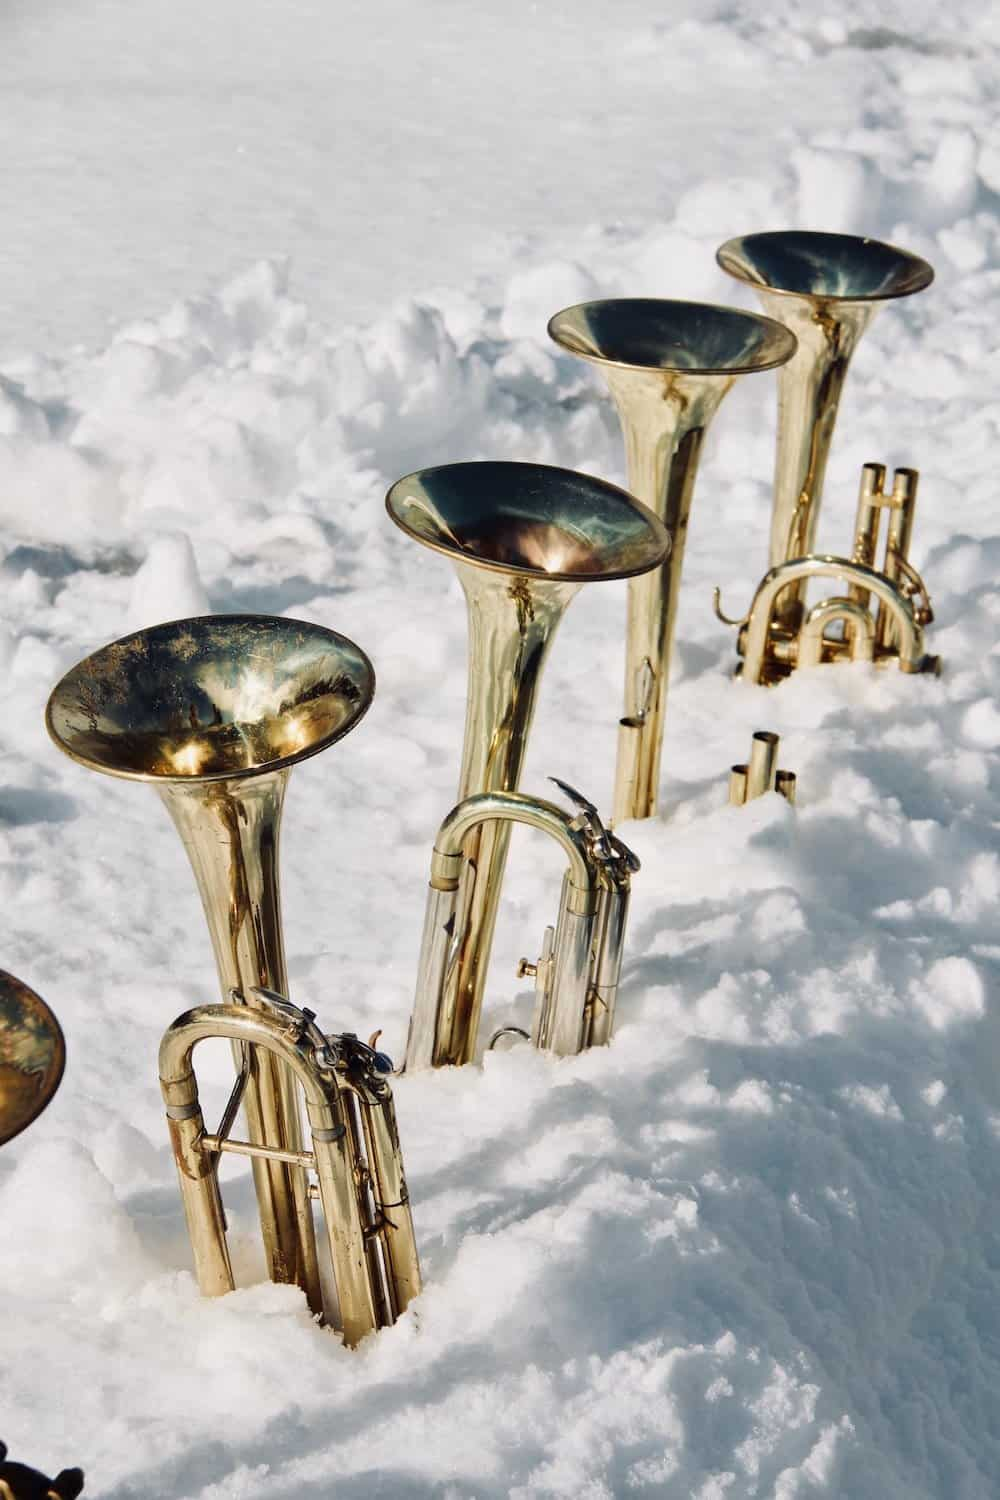 trumpet transposition - different keys of trumpets - trumpet bells in the snow